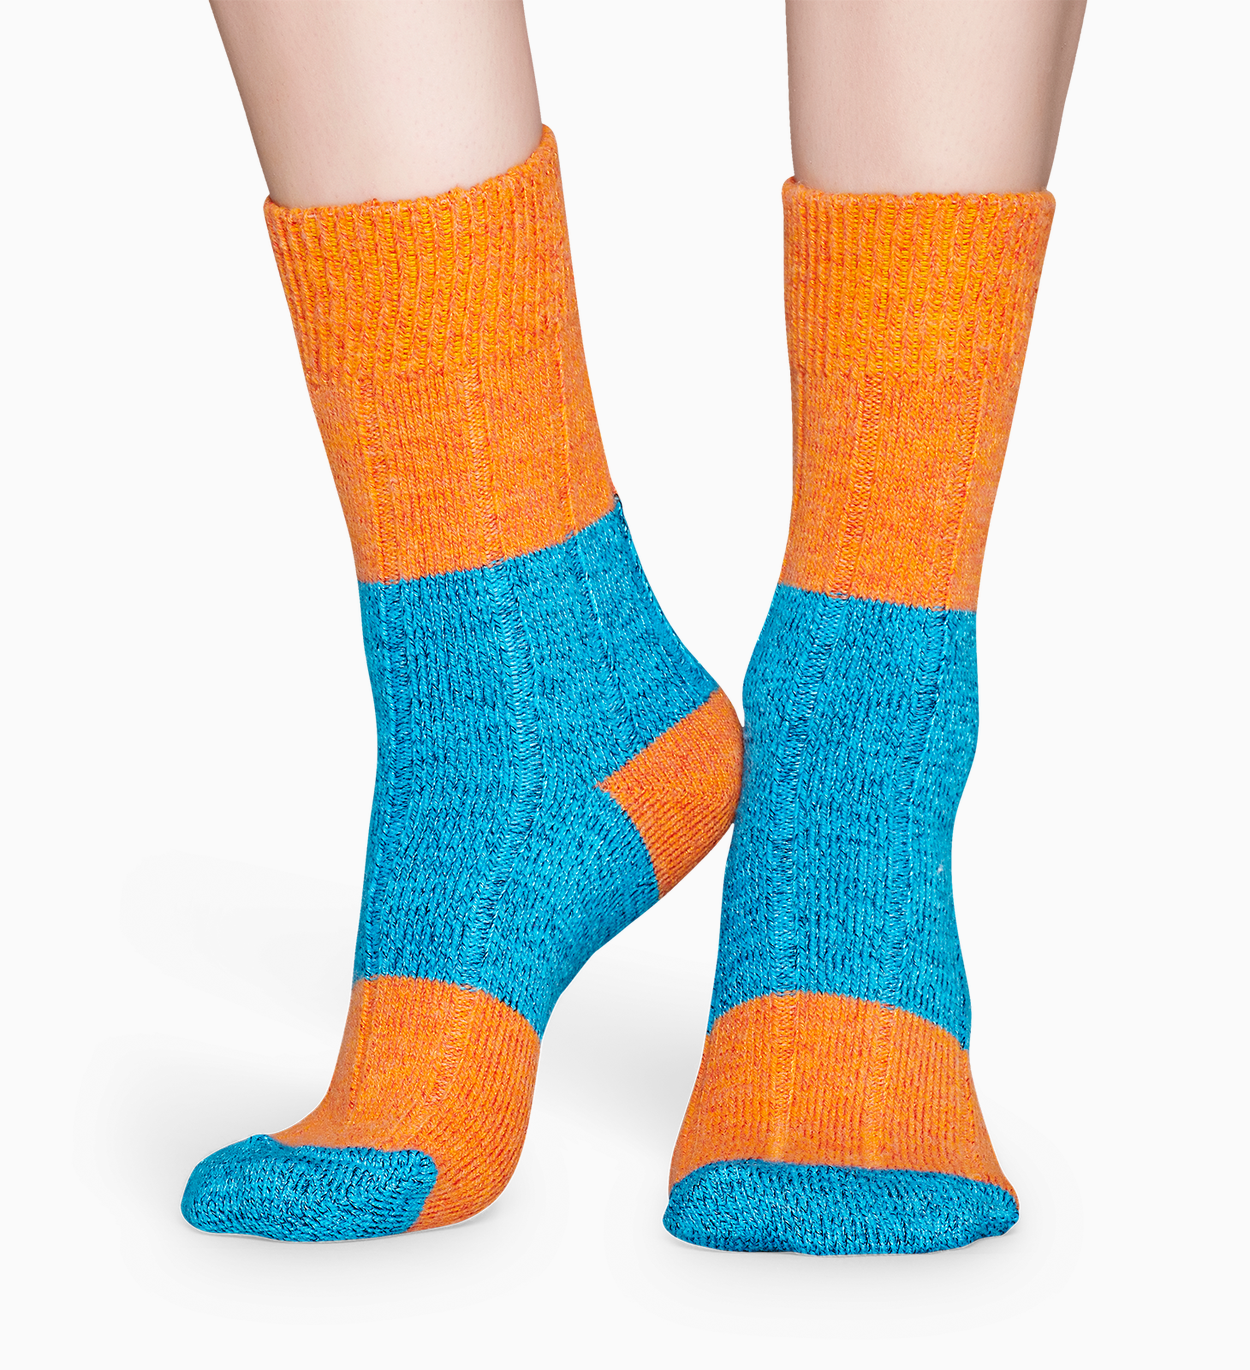 Arancione calze di lana: Blocked Rib | Happy Socks